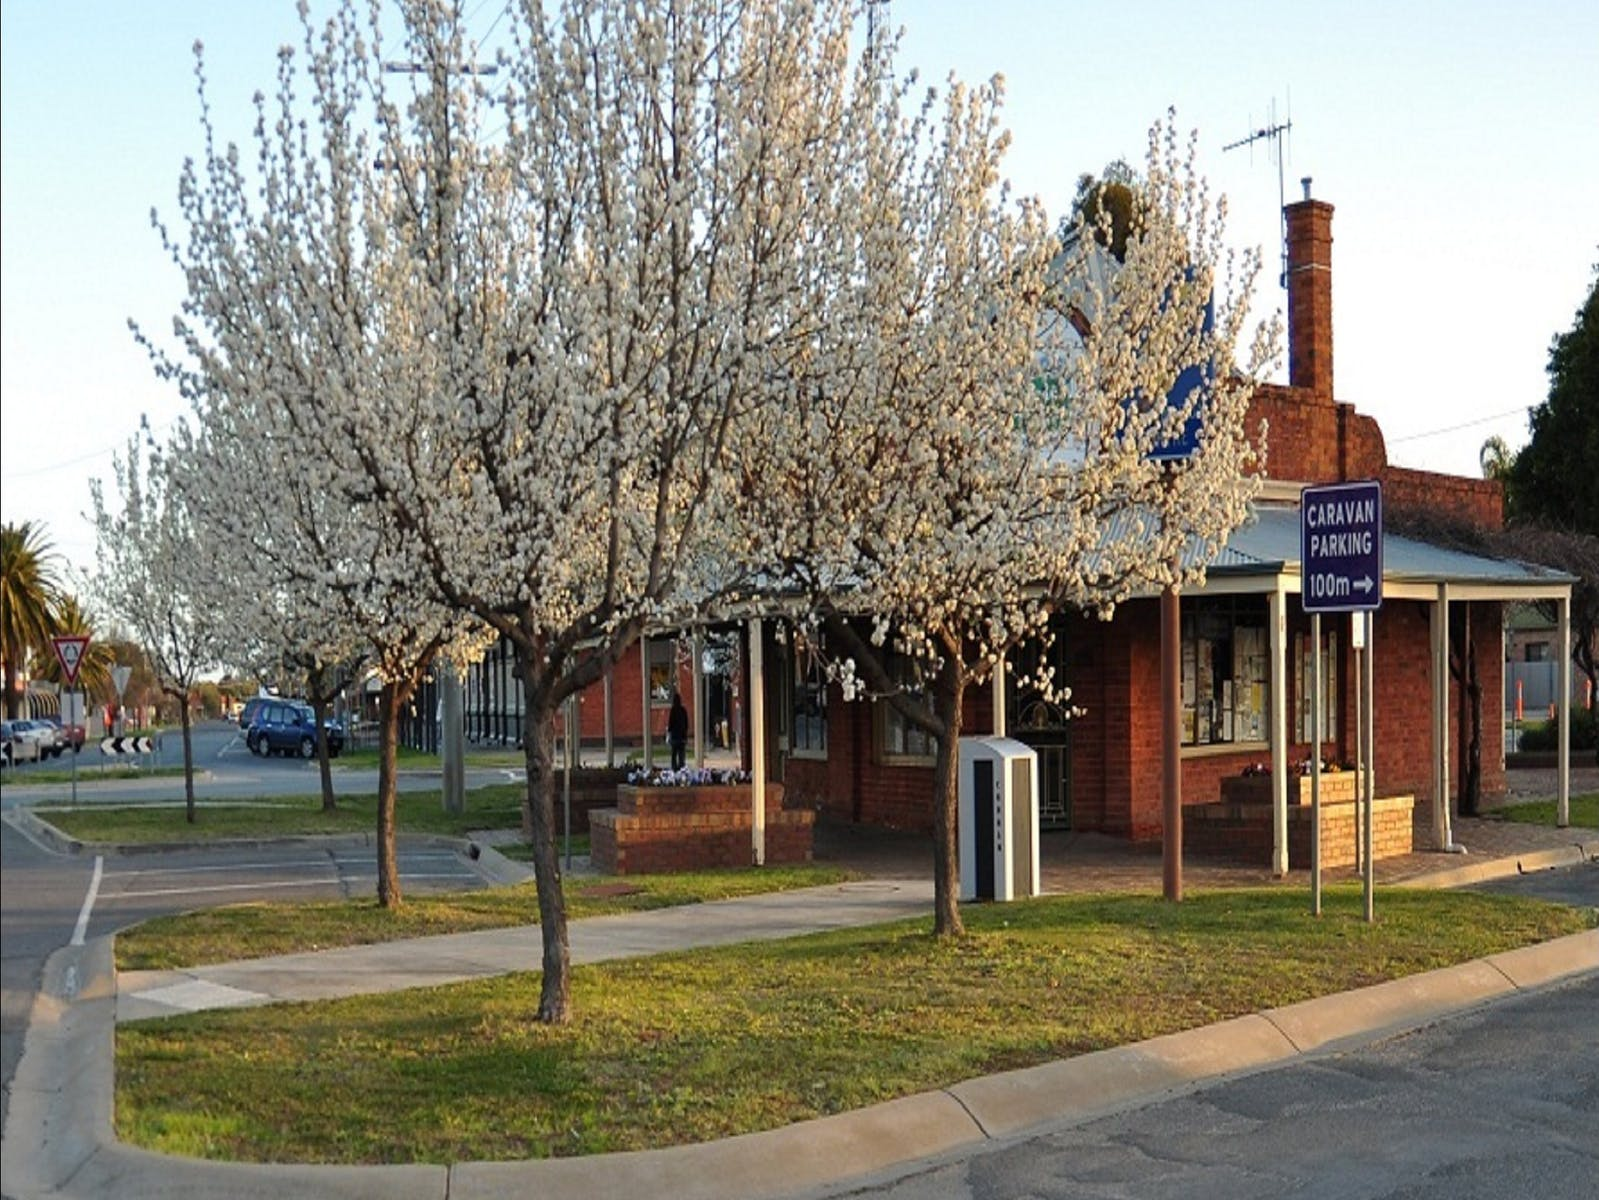 Cobram/Barooga Visitor Information Centre